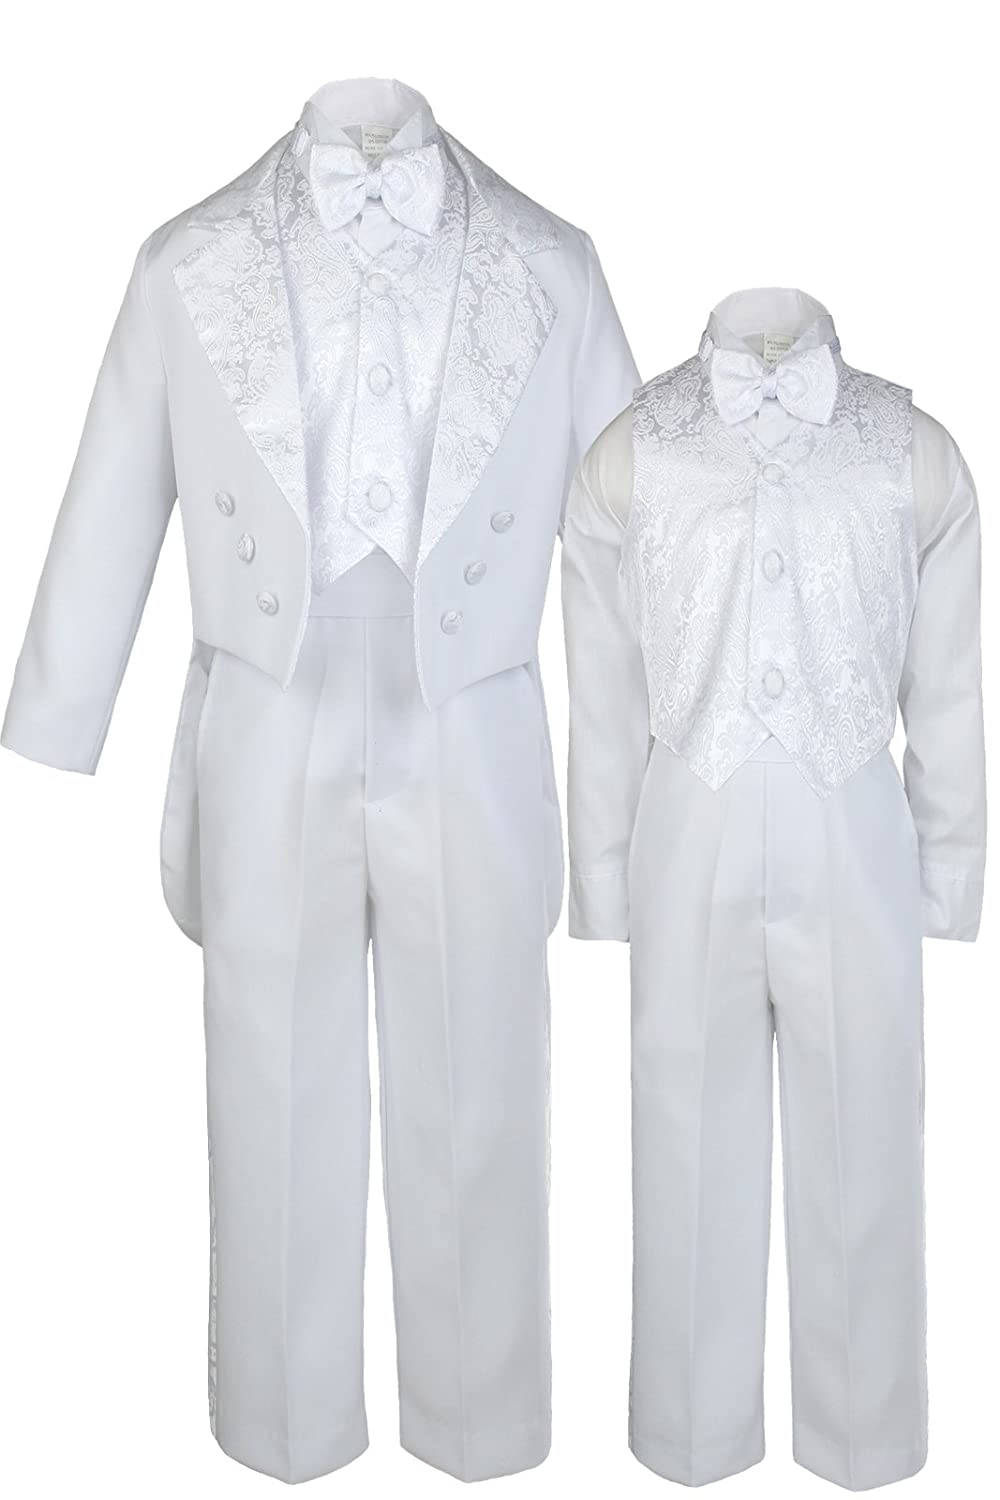 S: Unotux Baby Shower Boy Christening Baptism Suits Tuxedo White Tail Guadalupe S-7 0-6 months